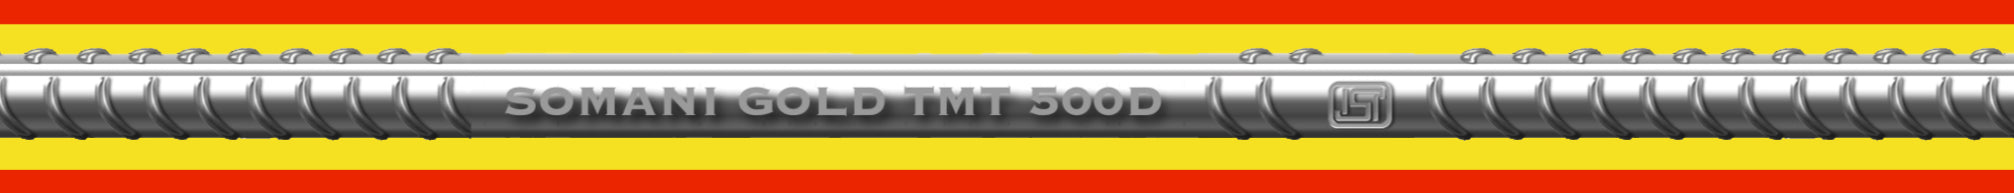 Somani Gold TMT Bars | Somani Steels | Somani Gold TMT Steel | Hindustan Steel Suppliers